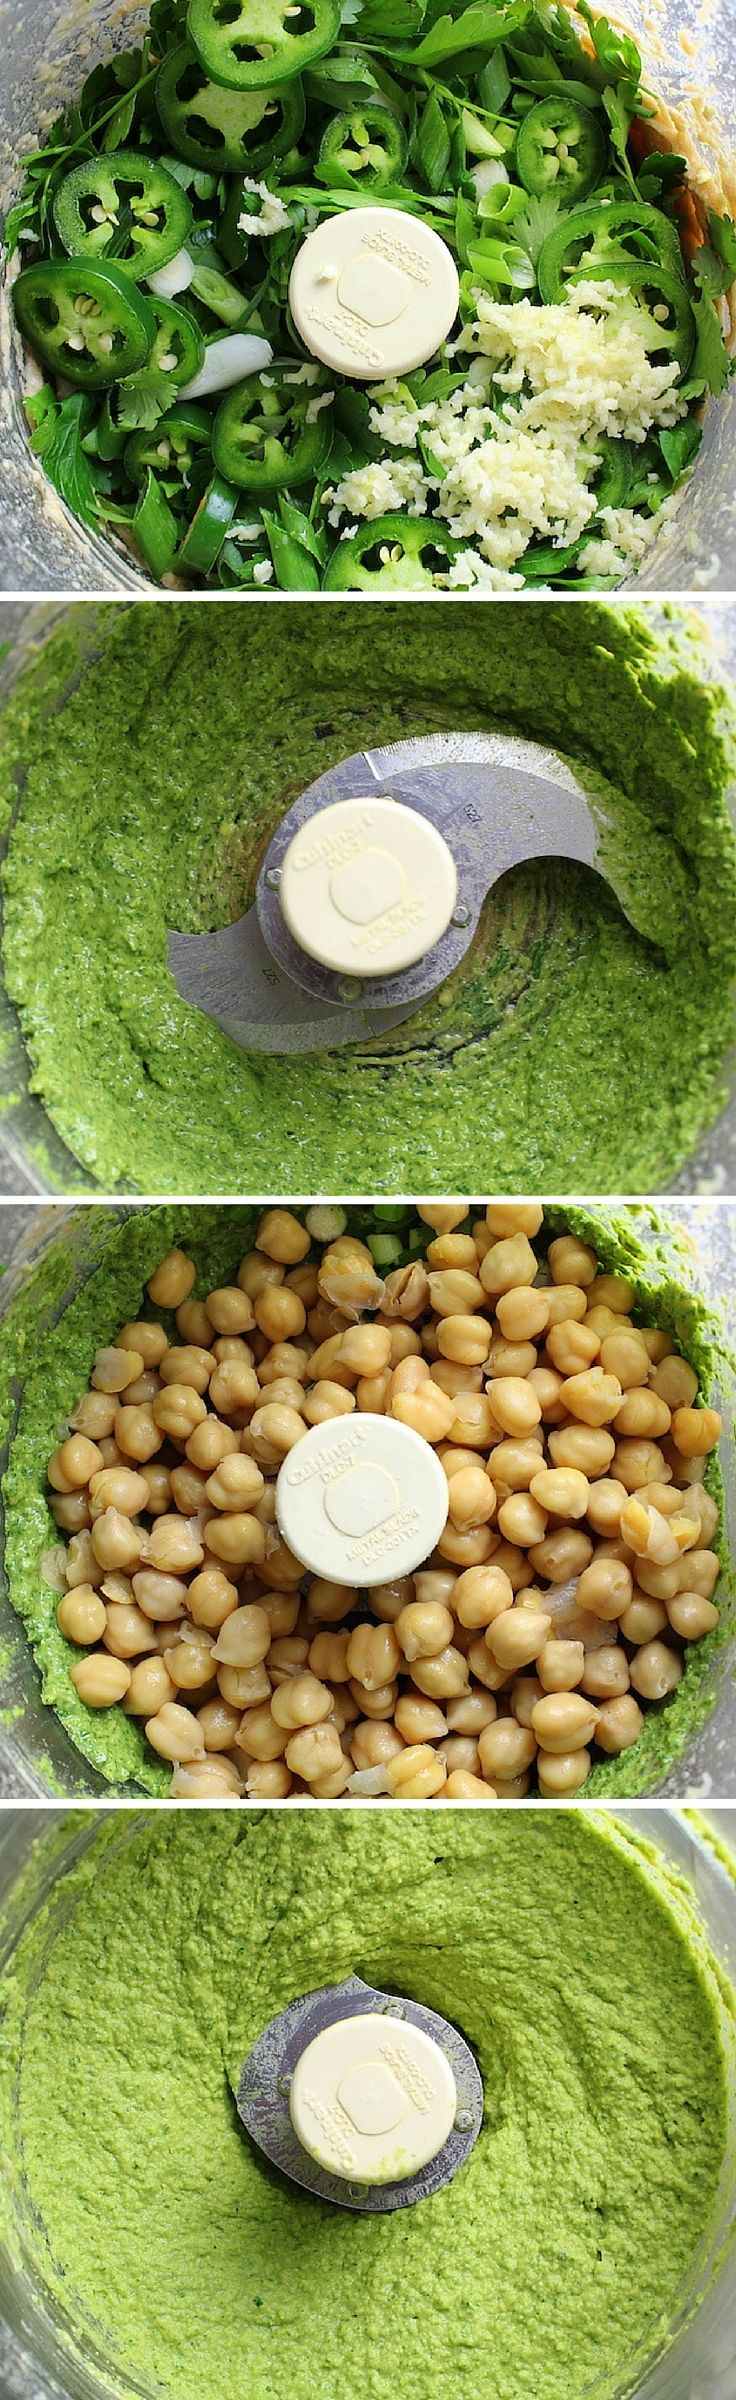 Spicy Green Hummus: This easy healthy homemade hummus adds a little kick to the classic! With chick peas, tahini, jalapeno, lemon juice, olive oil, garlic, cilantro, and parsley. #Hummus http://tasteandsee.com